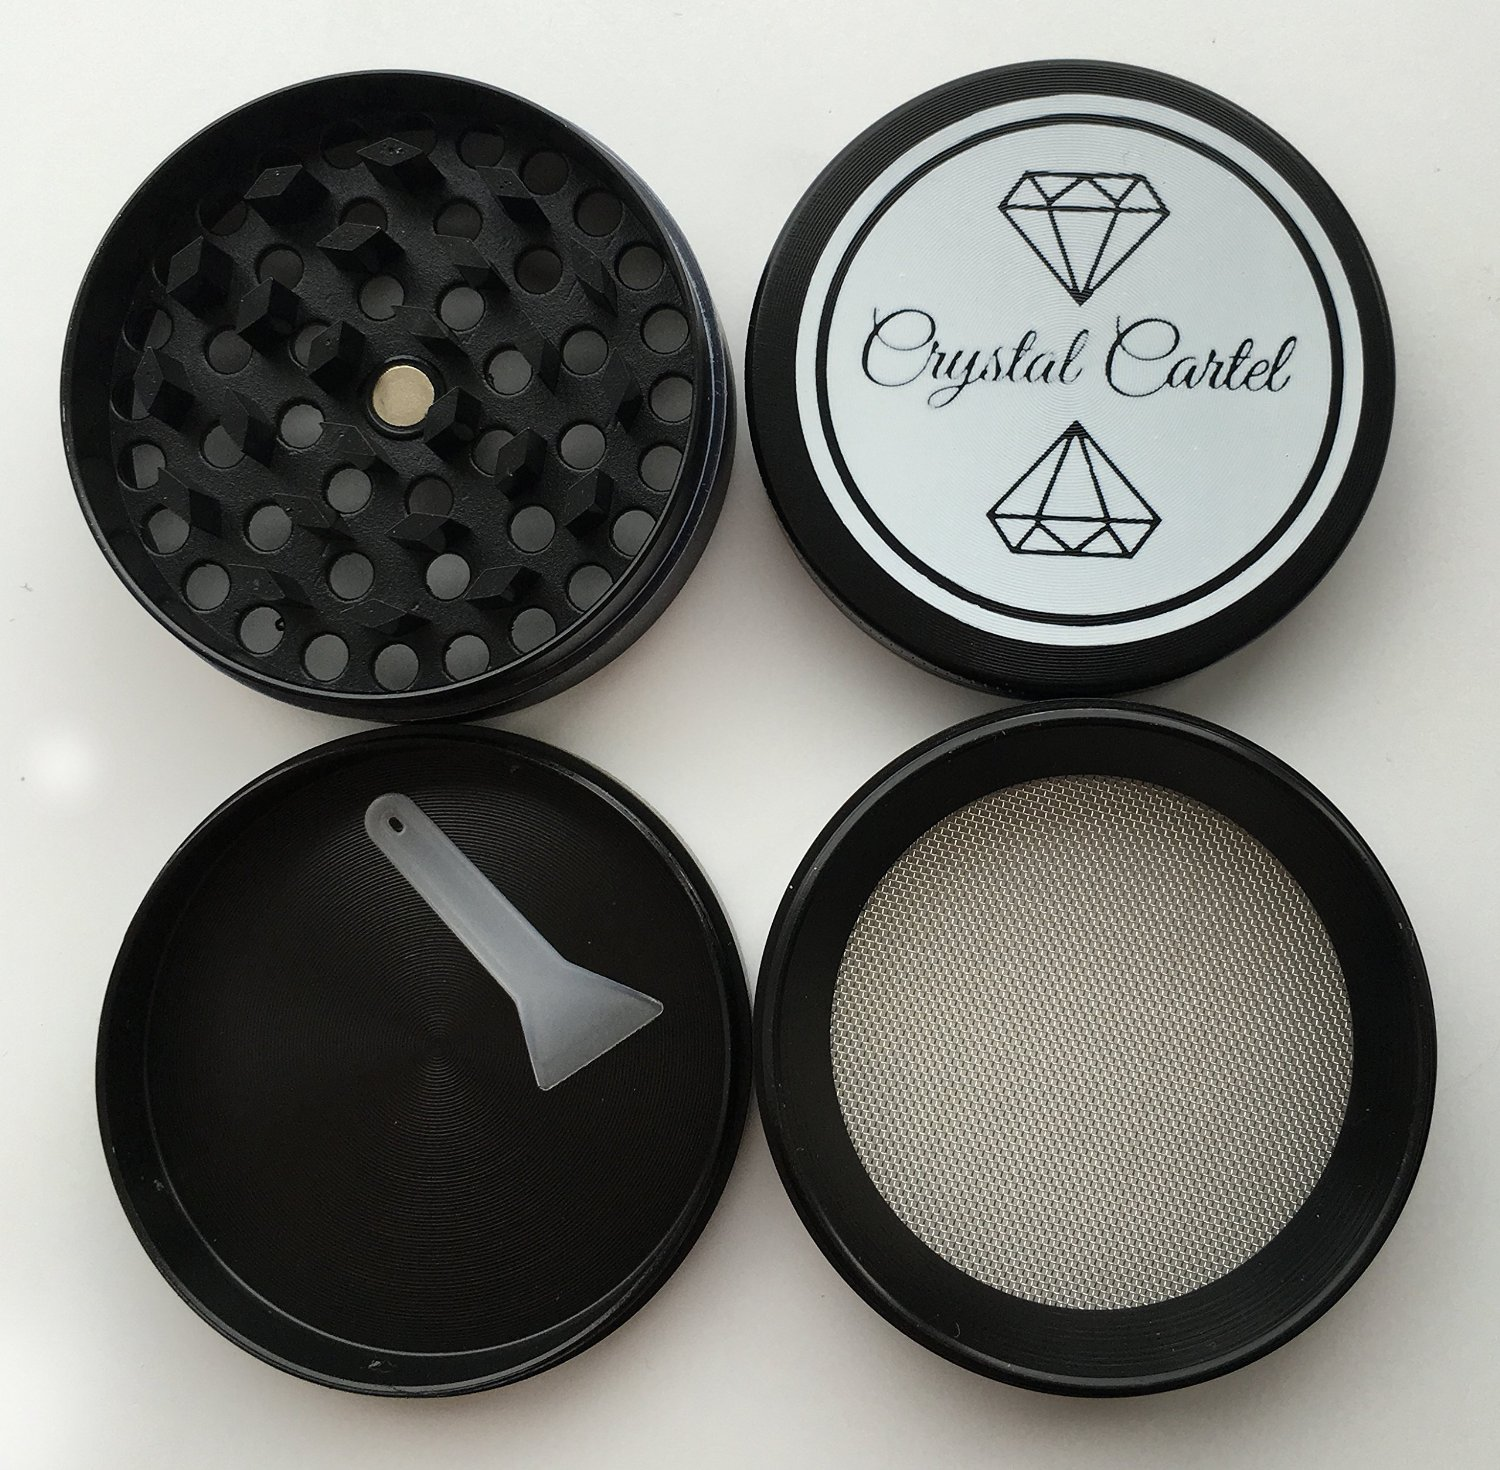 All parts of the Crystal Cartel Grinder